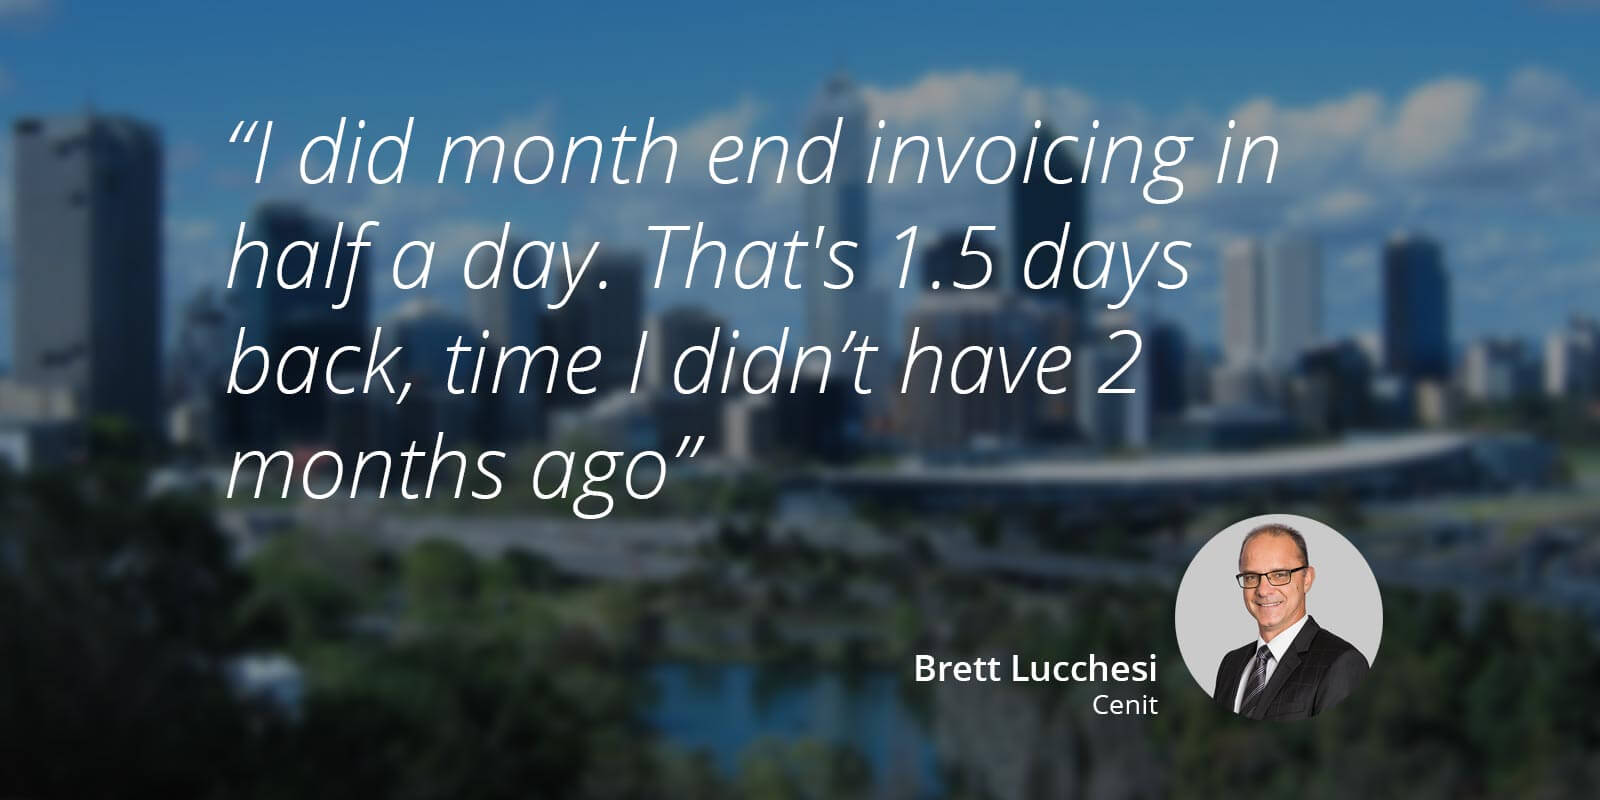 Interview with Brett Lucchesi, managing director of Cenit Structural Engineers.